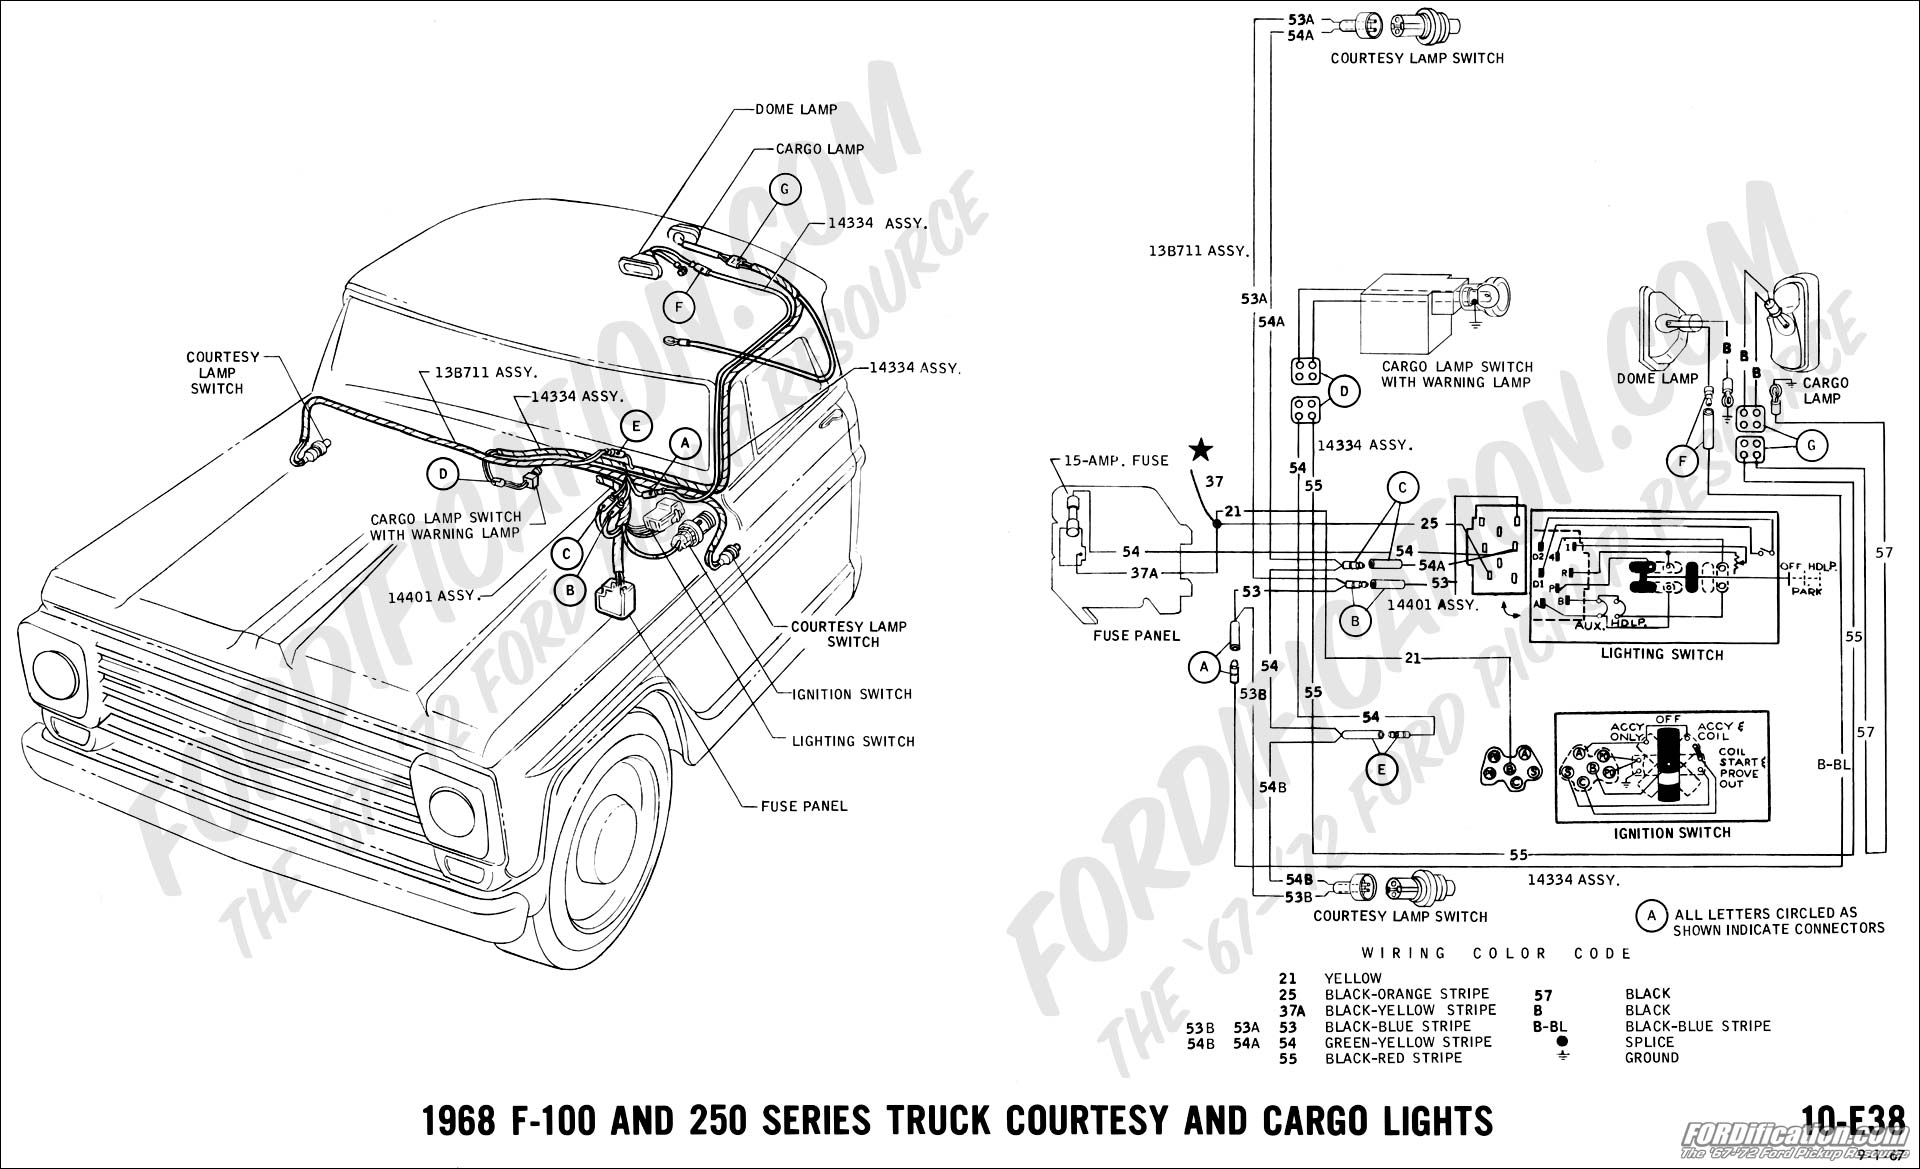 1968 Ford Wiring Diagram Schemes 1980 Chevy Truck Harness Technical Drawings And Schematics Section H Diagrams F 100